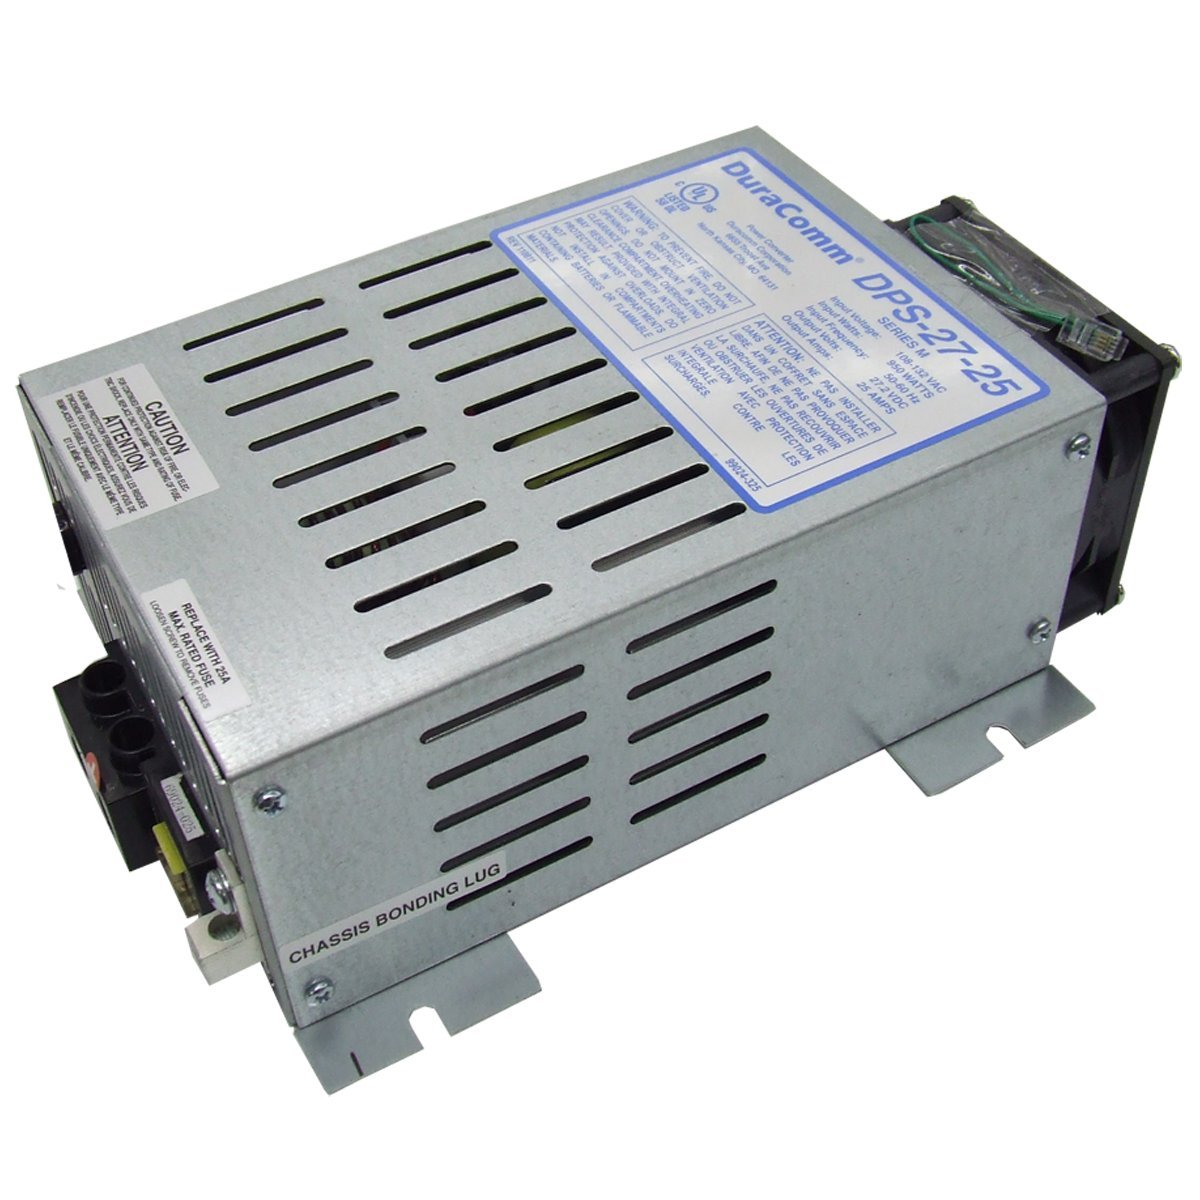 DuraComm DPS-27-25 Power Source Utilities with Low Noise Supply